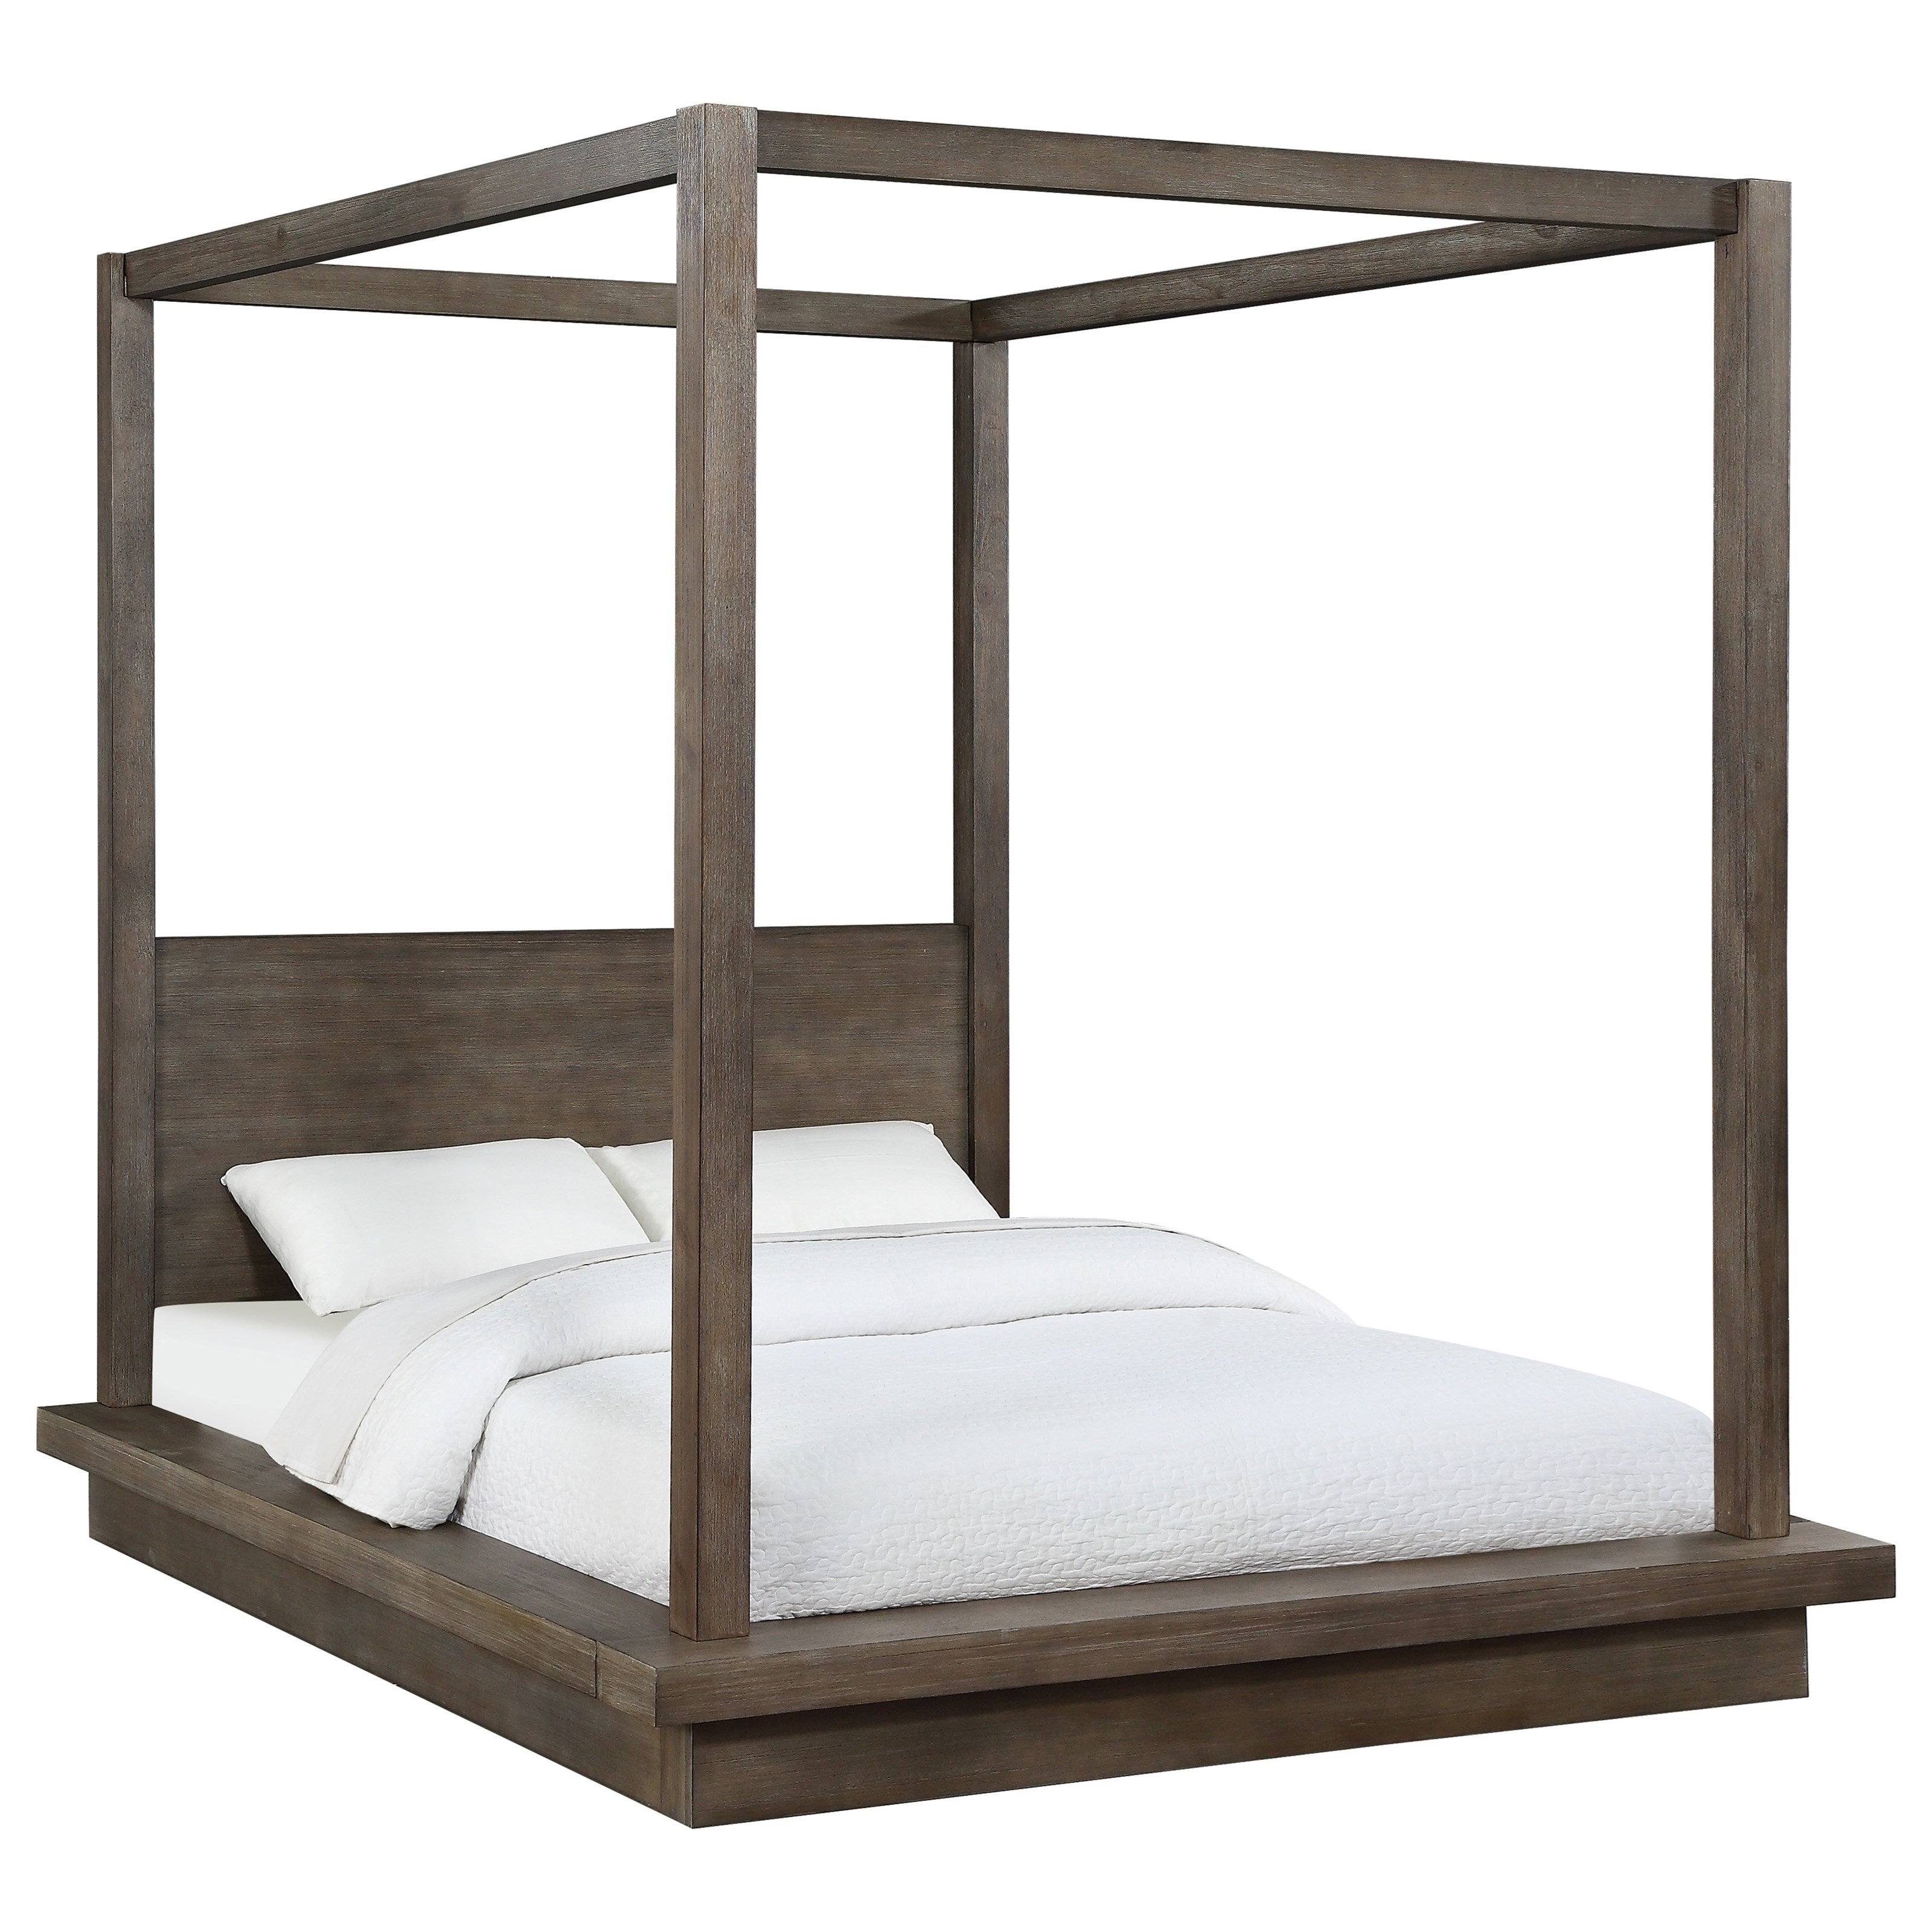 Modus International Melbourne Contemporary King Canopy Bed Reeds Furniture Canopy Beds